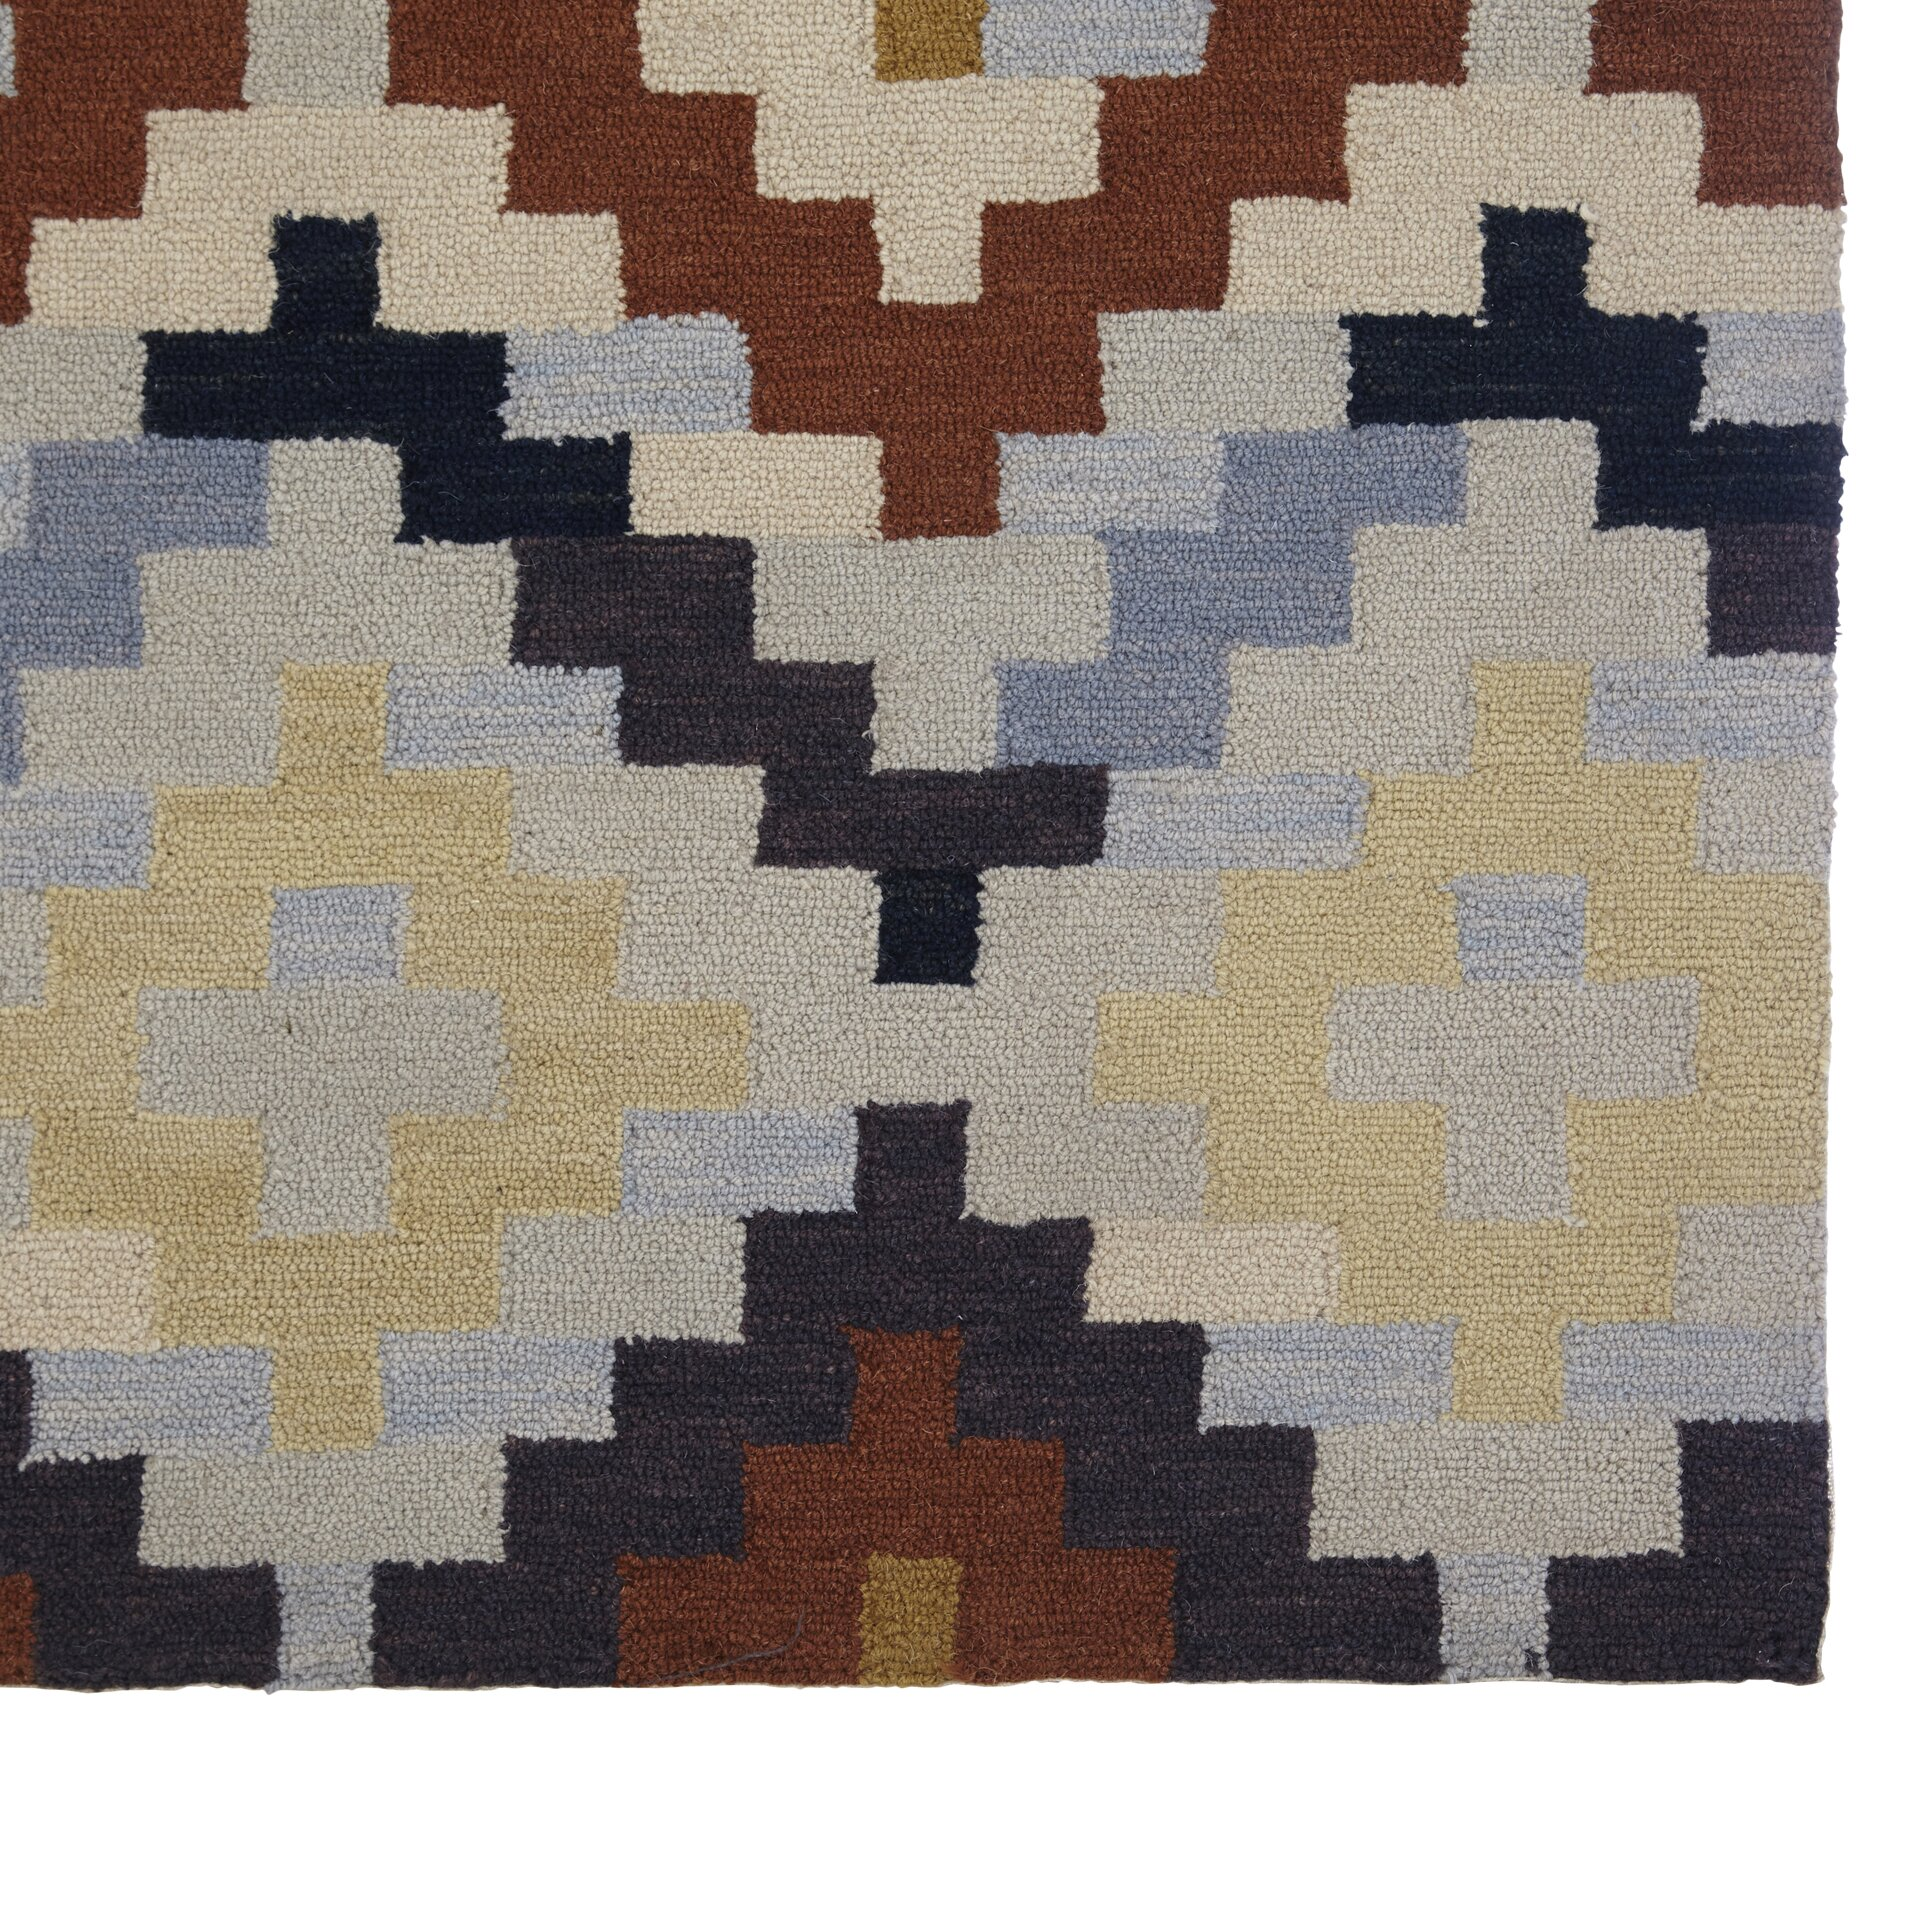 Checked Area Rugs: Varick Gallery Pitkin Checked Area Rug & Reviews